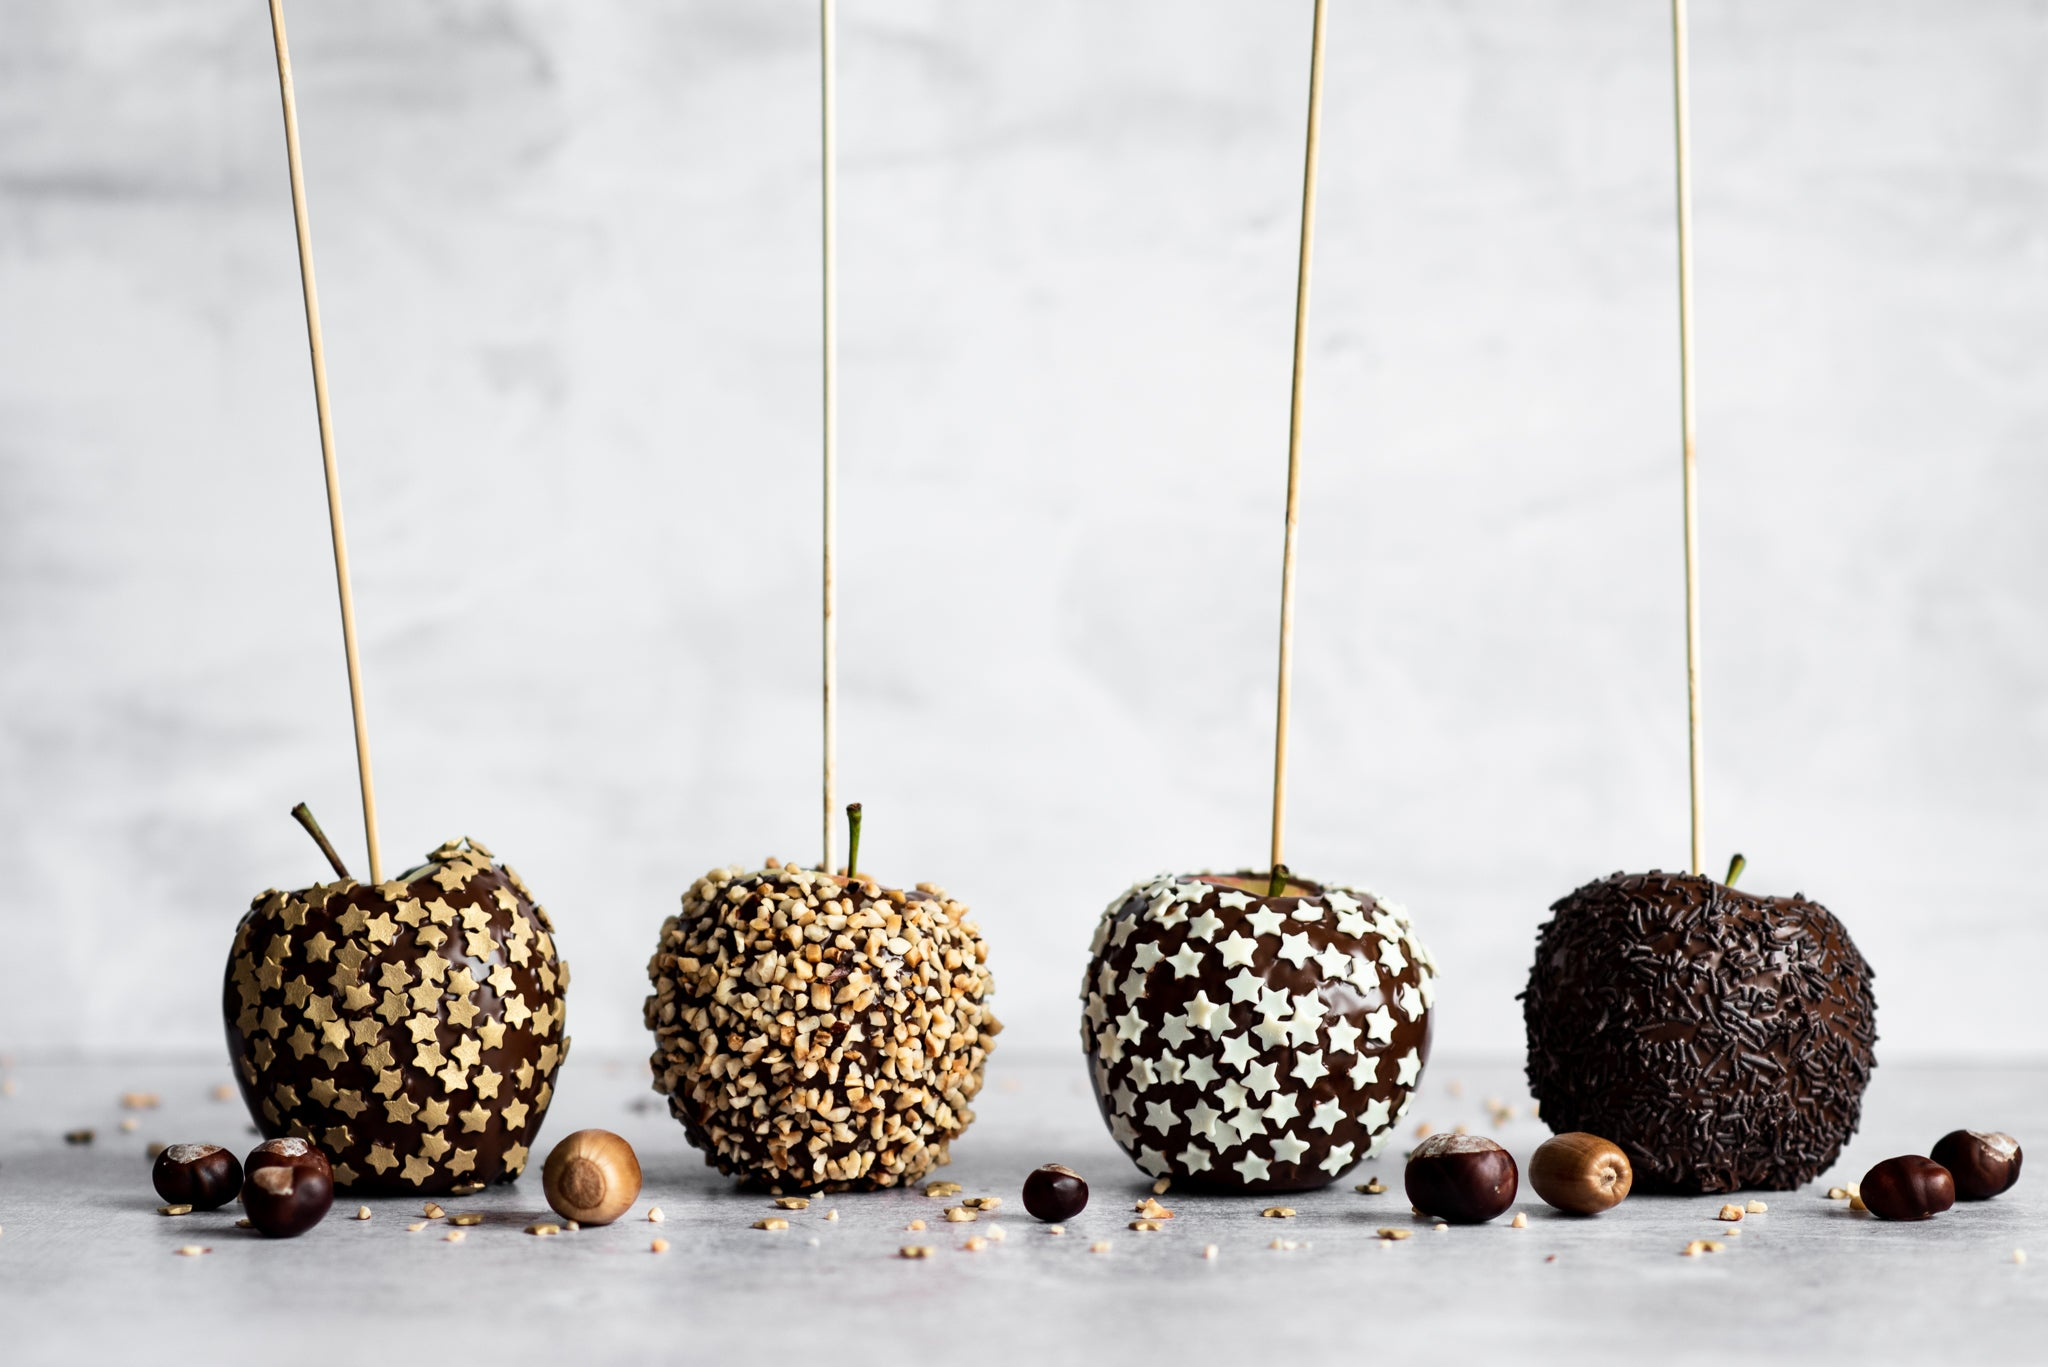 Chocolate-Dipped-Apples-WEB-RES-9.jpg